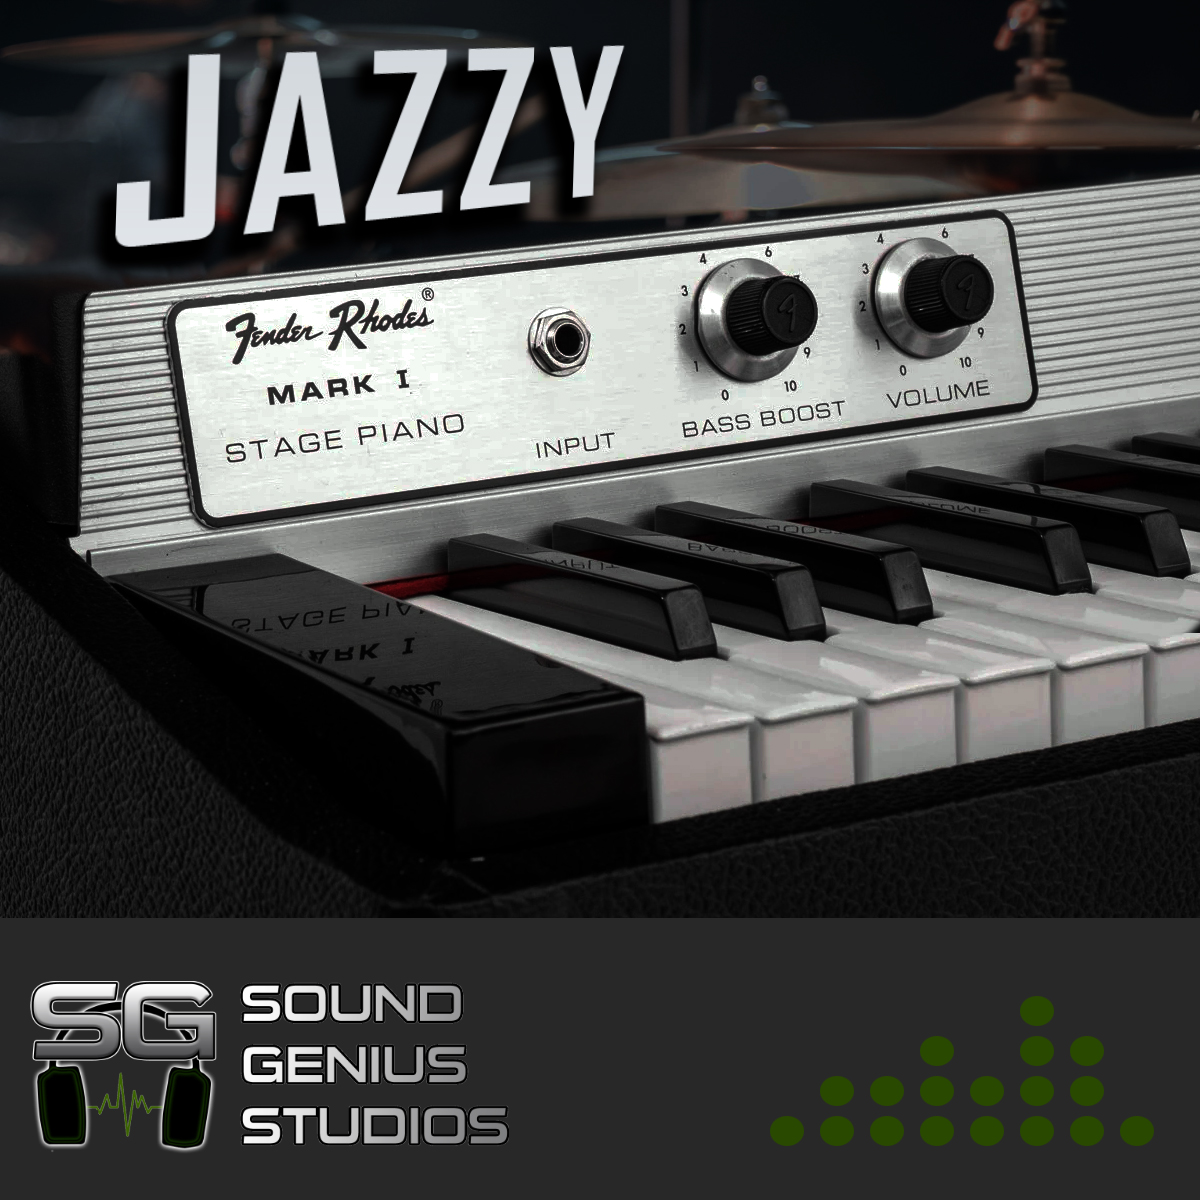 Jazz Jazzy Music Collection